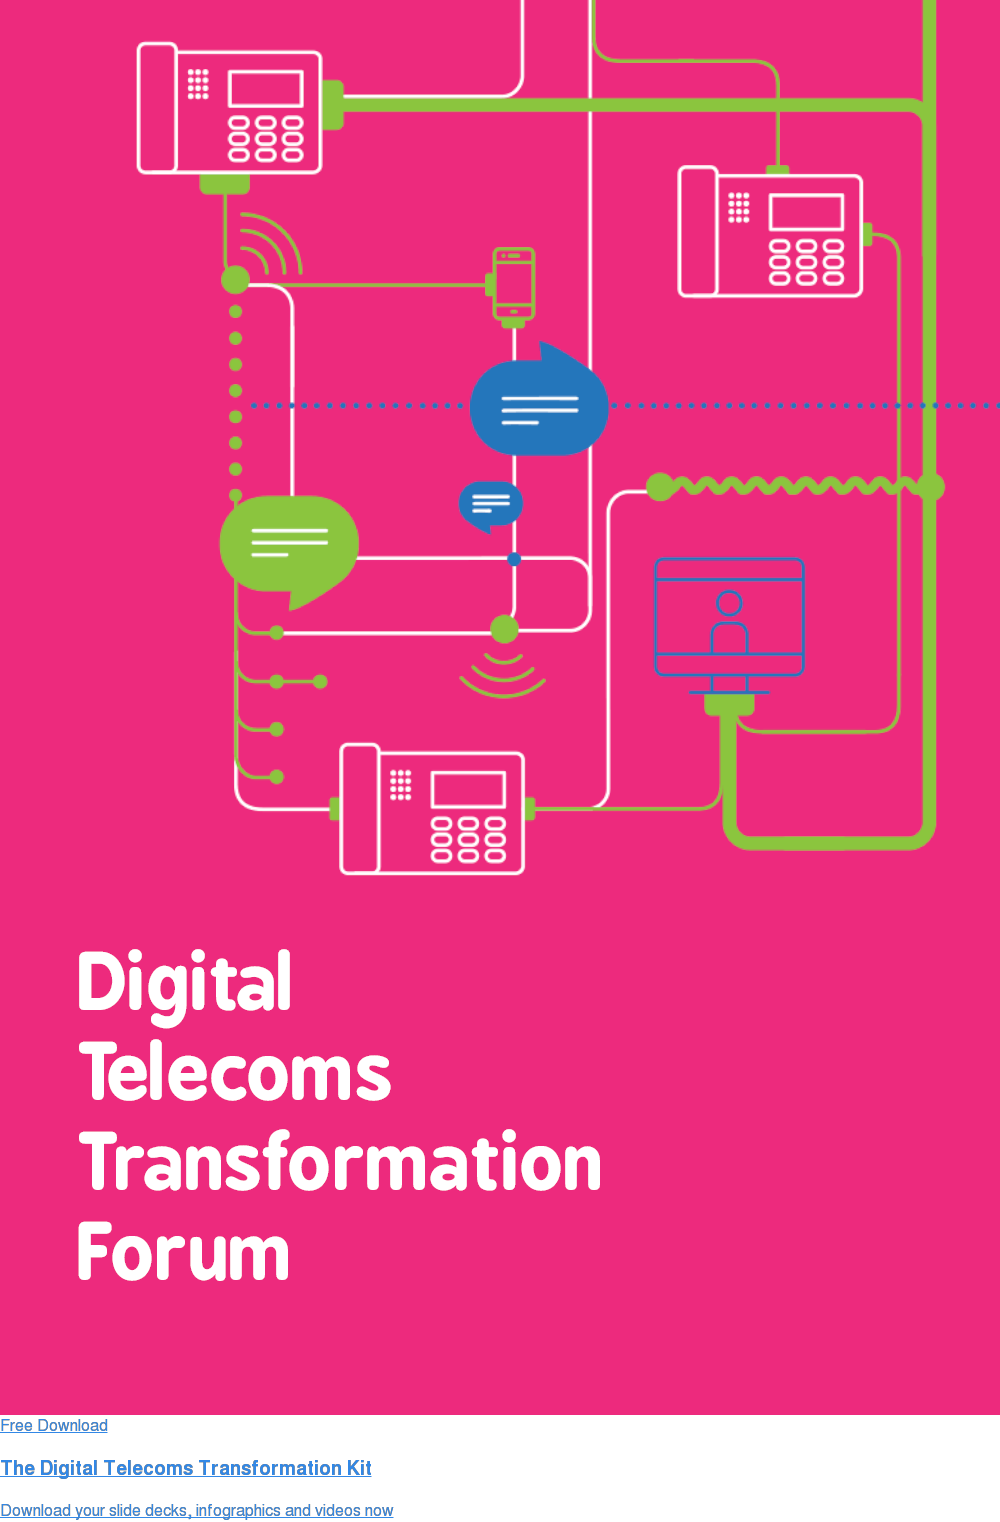 Free Download  The Digital Telecoms Transformation Kit Download your slide decks, infographics and videos now